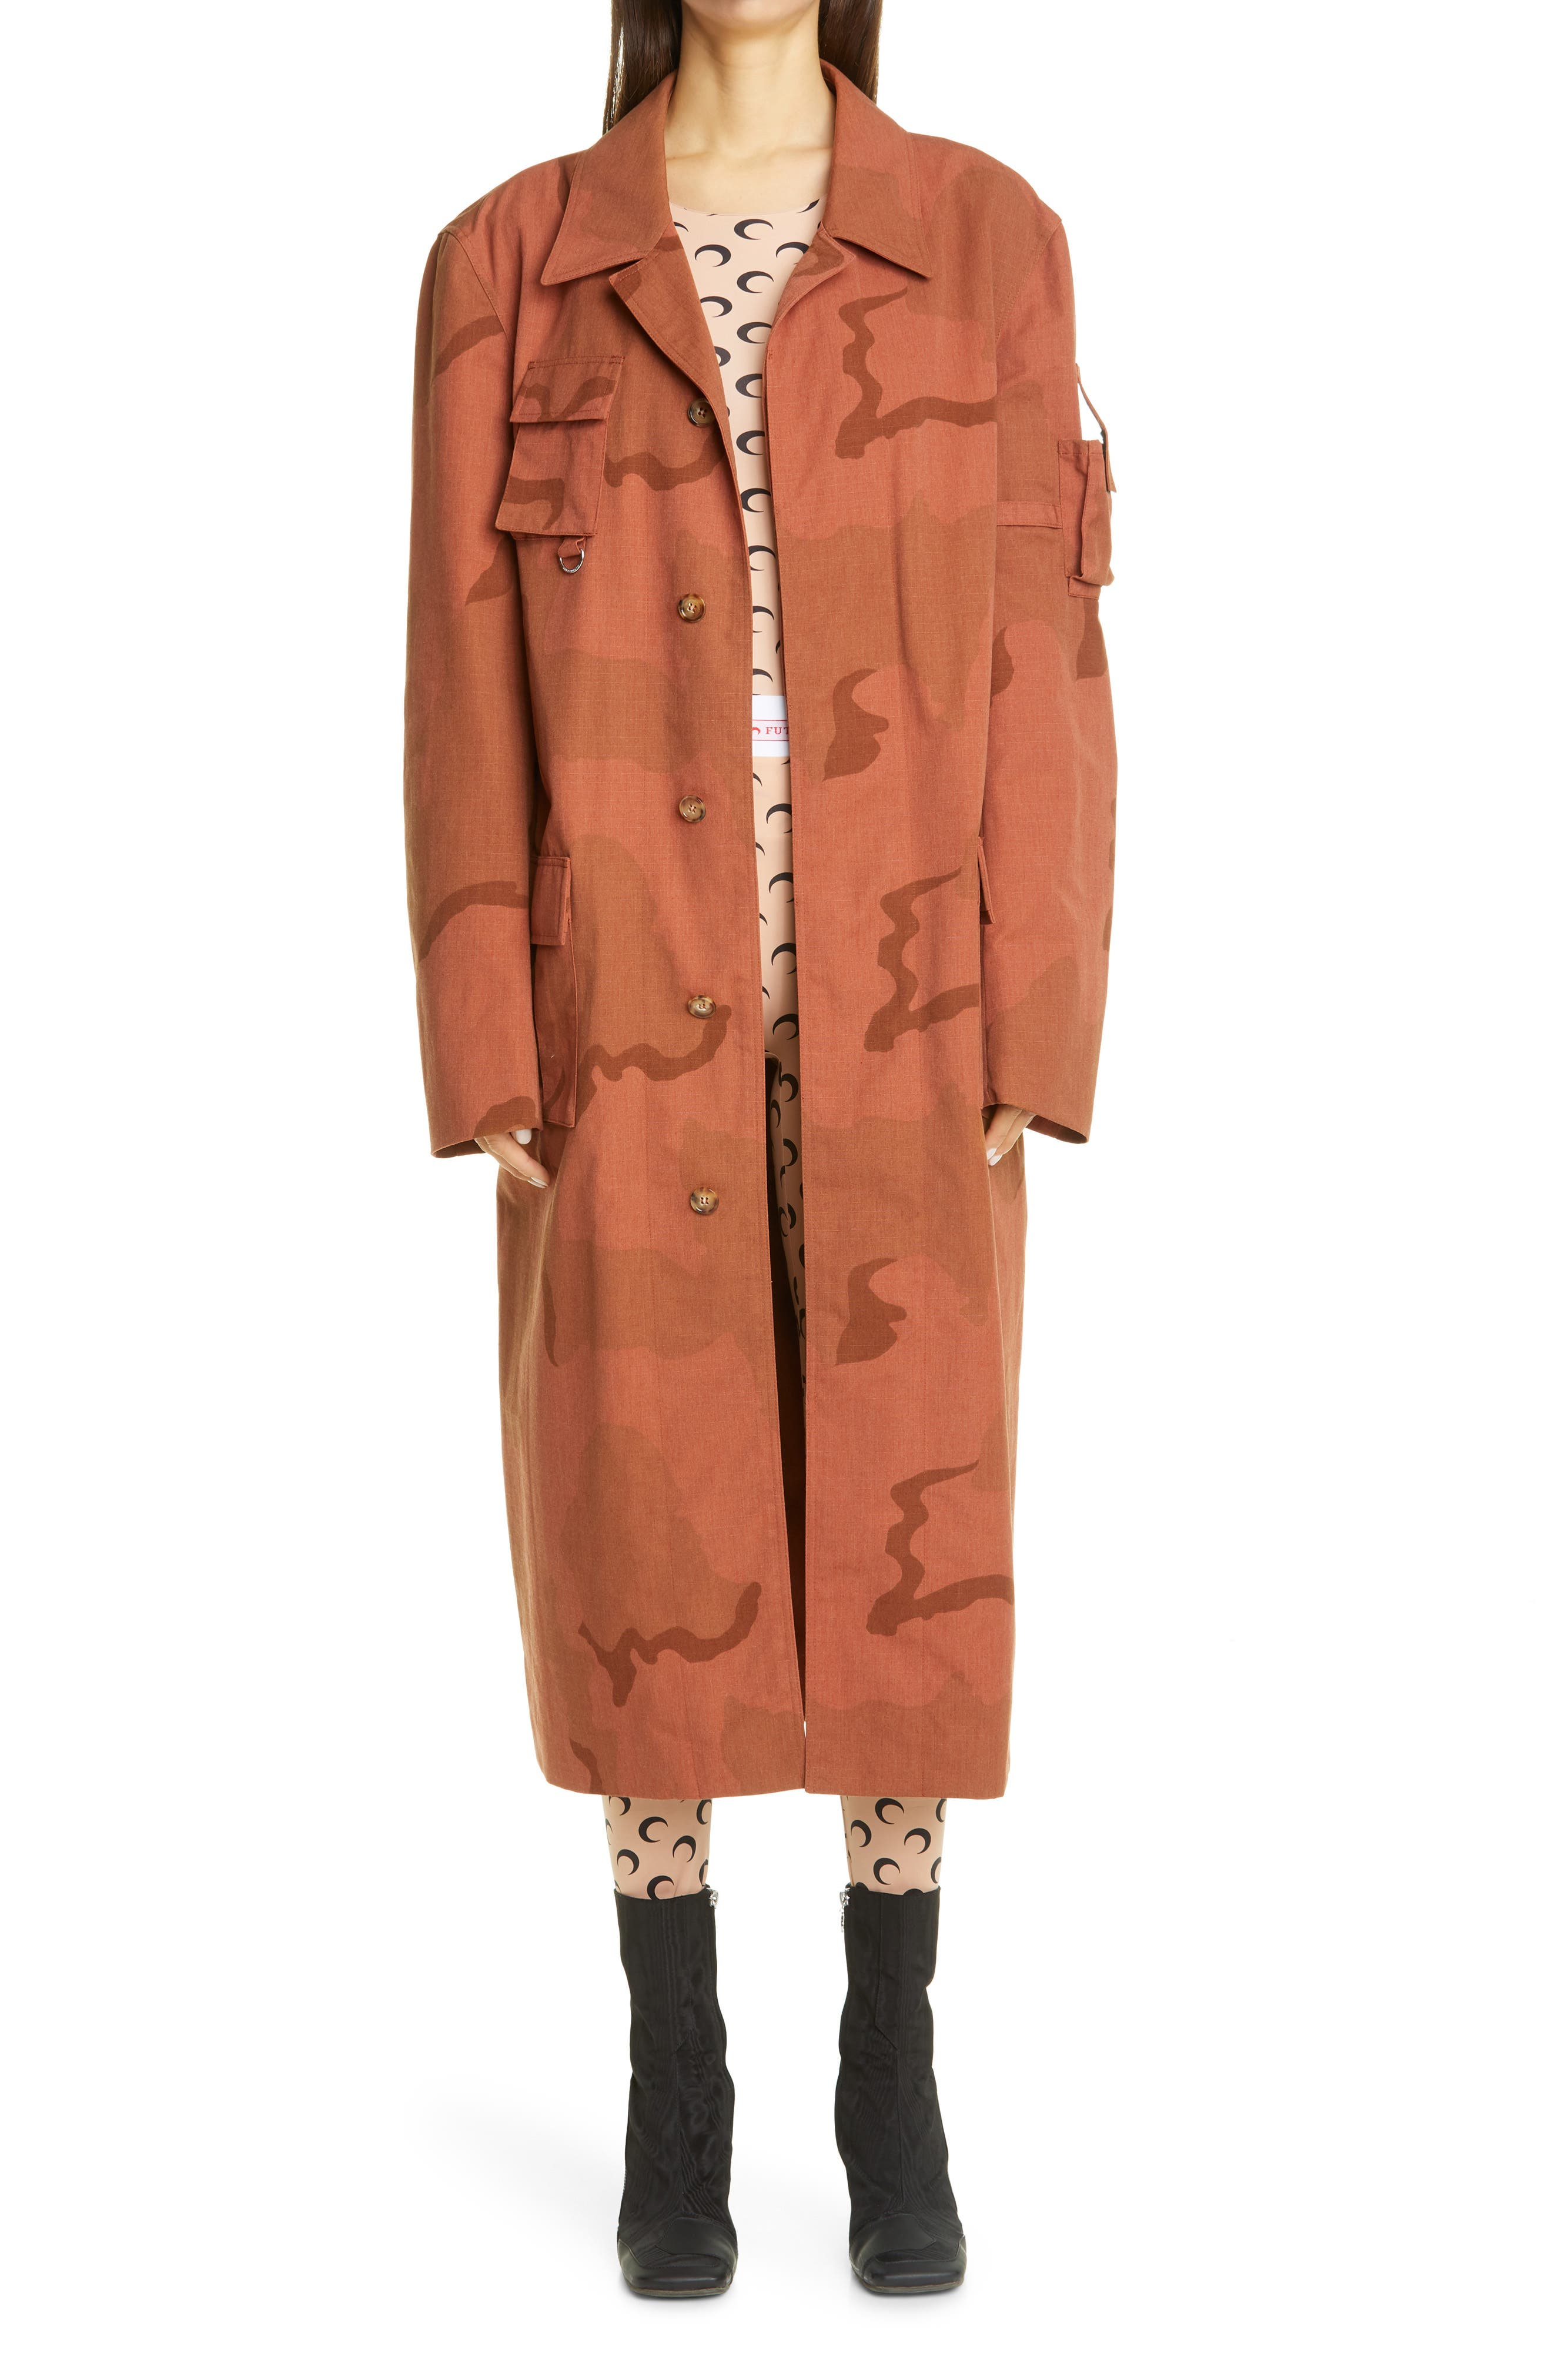 Marine Serre combats fashion-industry waste with this runway-featured coat made from upcycled cotton ripstop patterned in terra cotta camouflage. Style Name: Marine Serre Regenerated Military Coat. Style Number: 6071927. Available in stores.